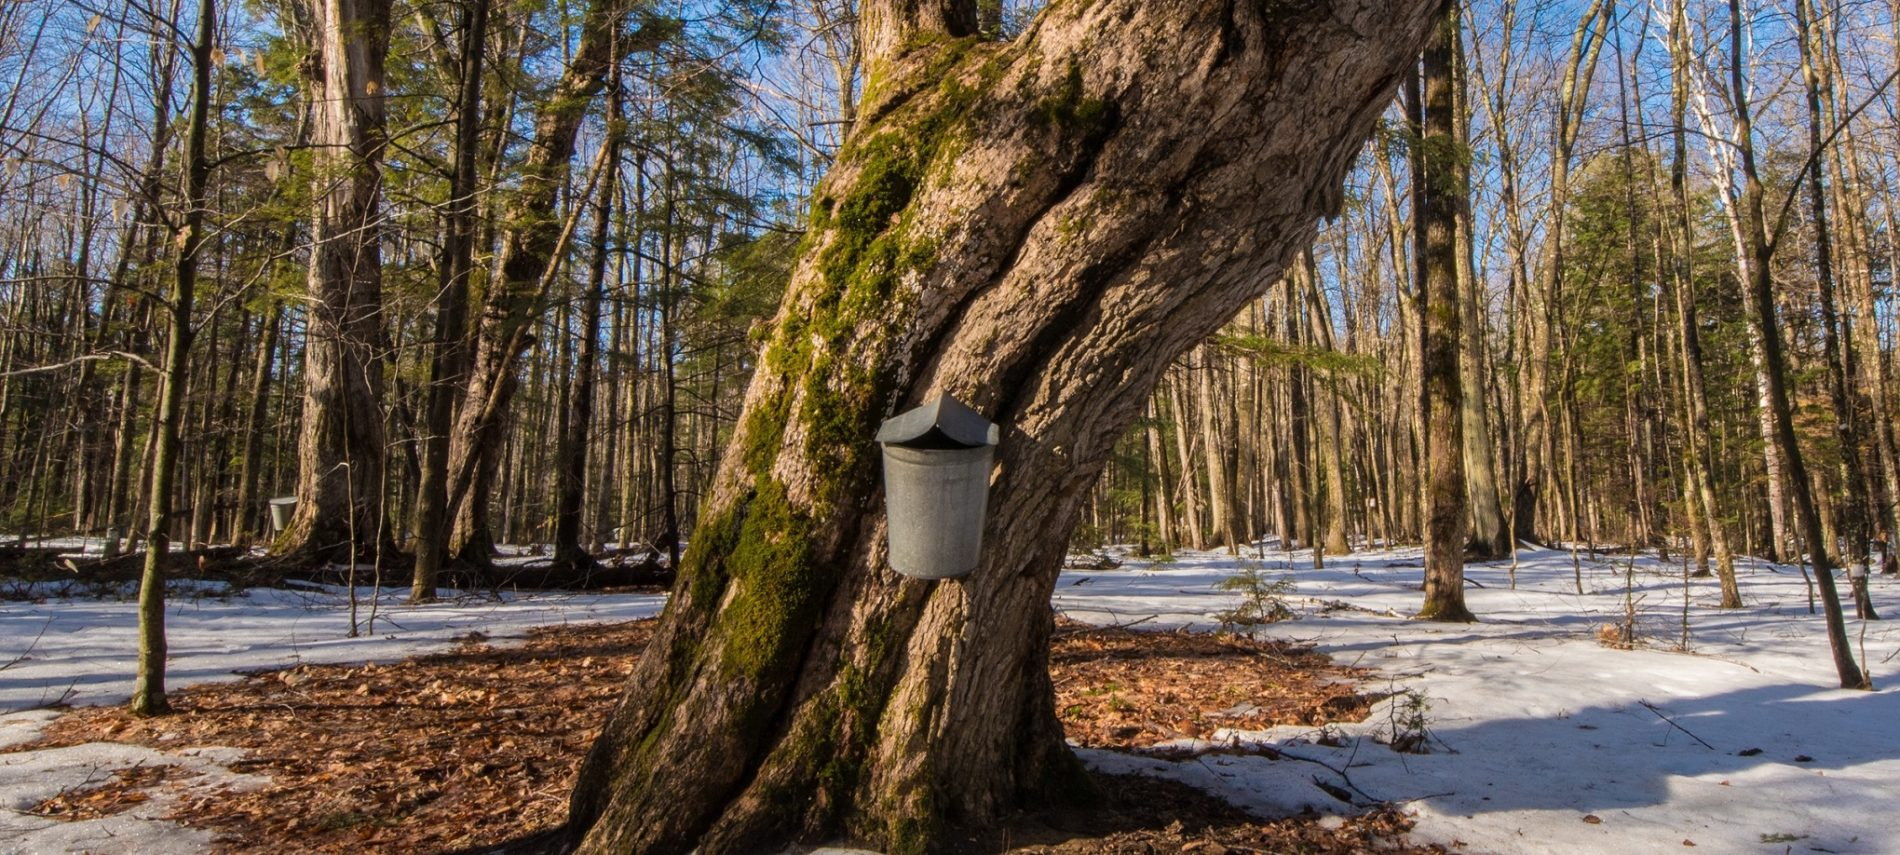 Maple trees in 100 acre wood, Intervale, NH